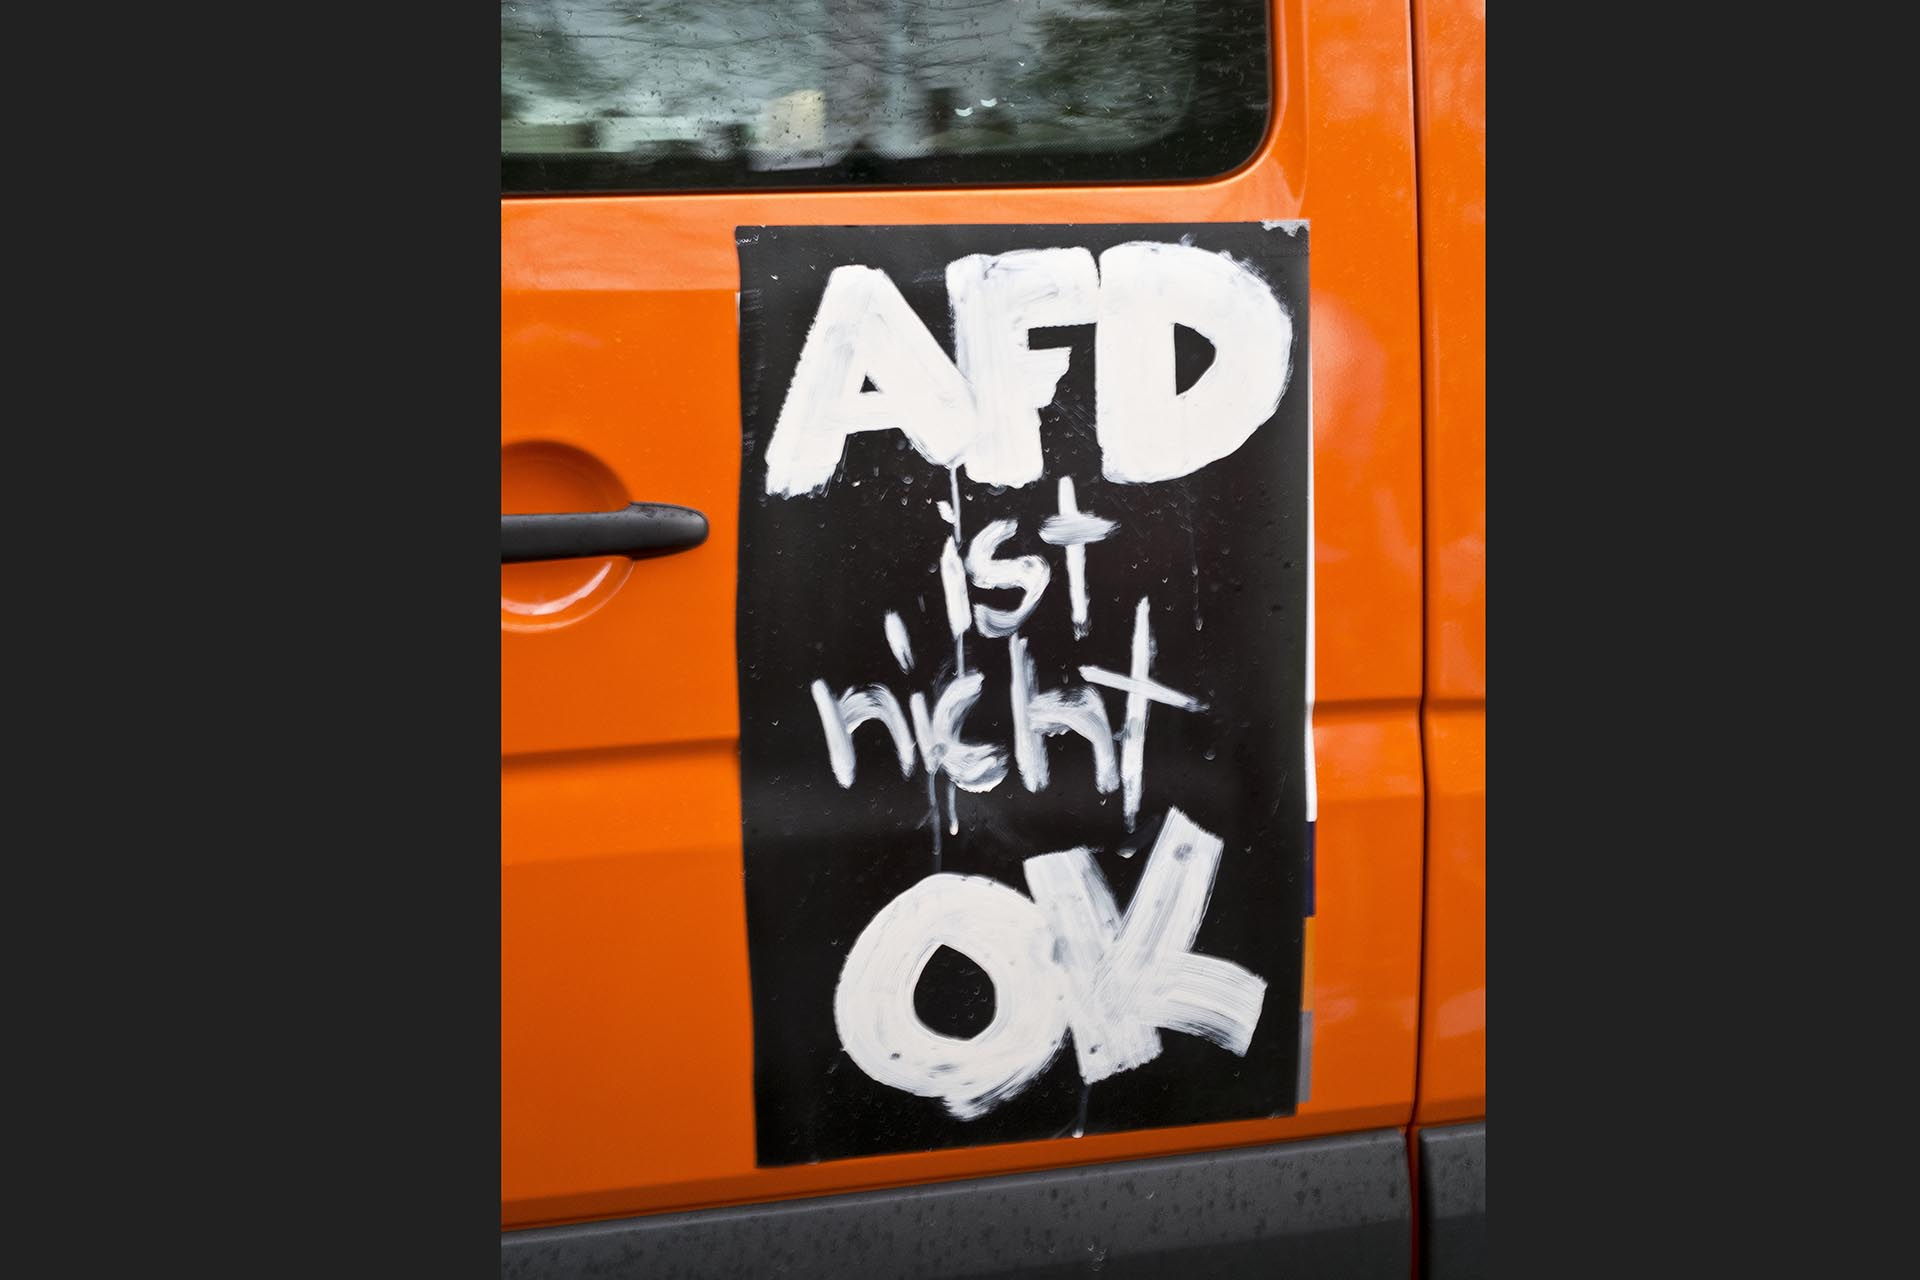 antiafd2064